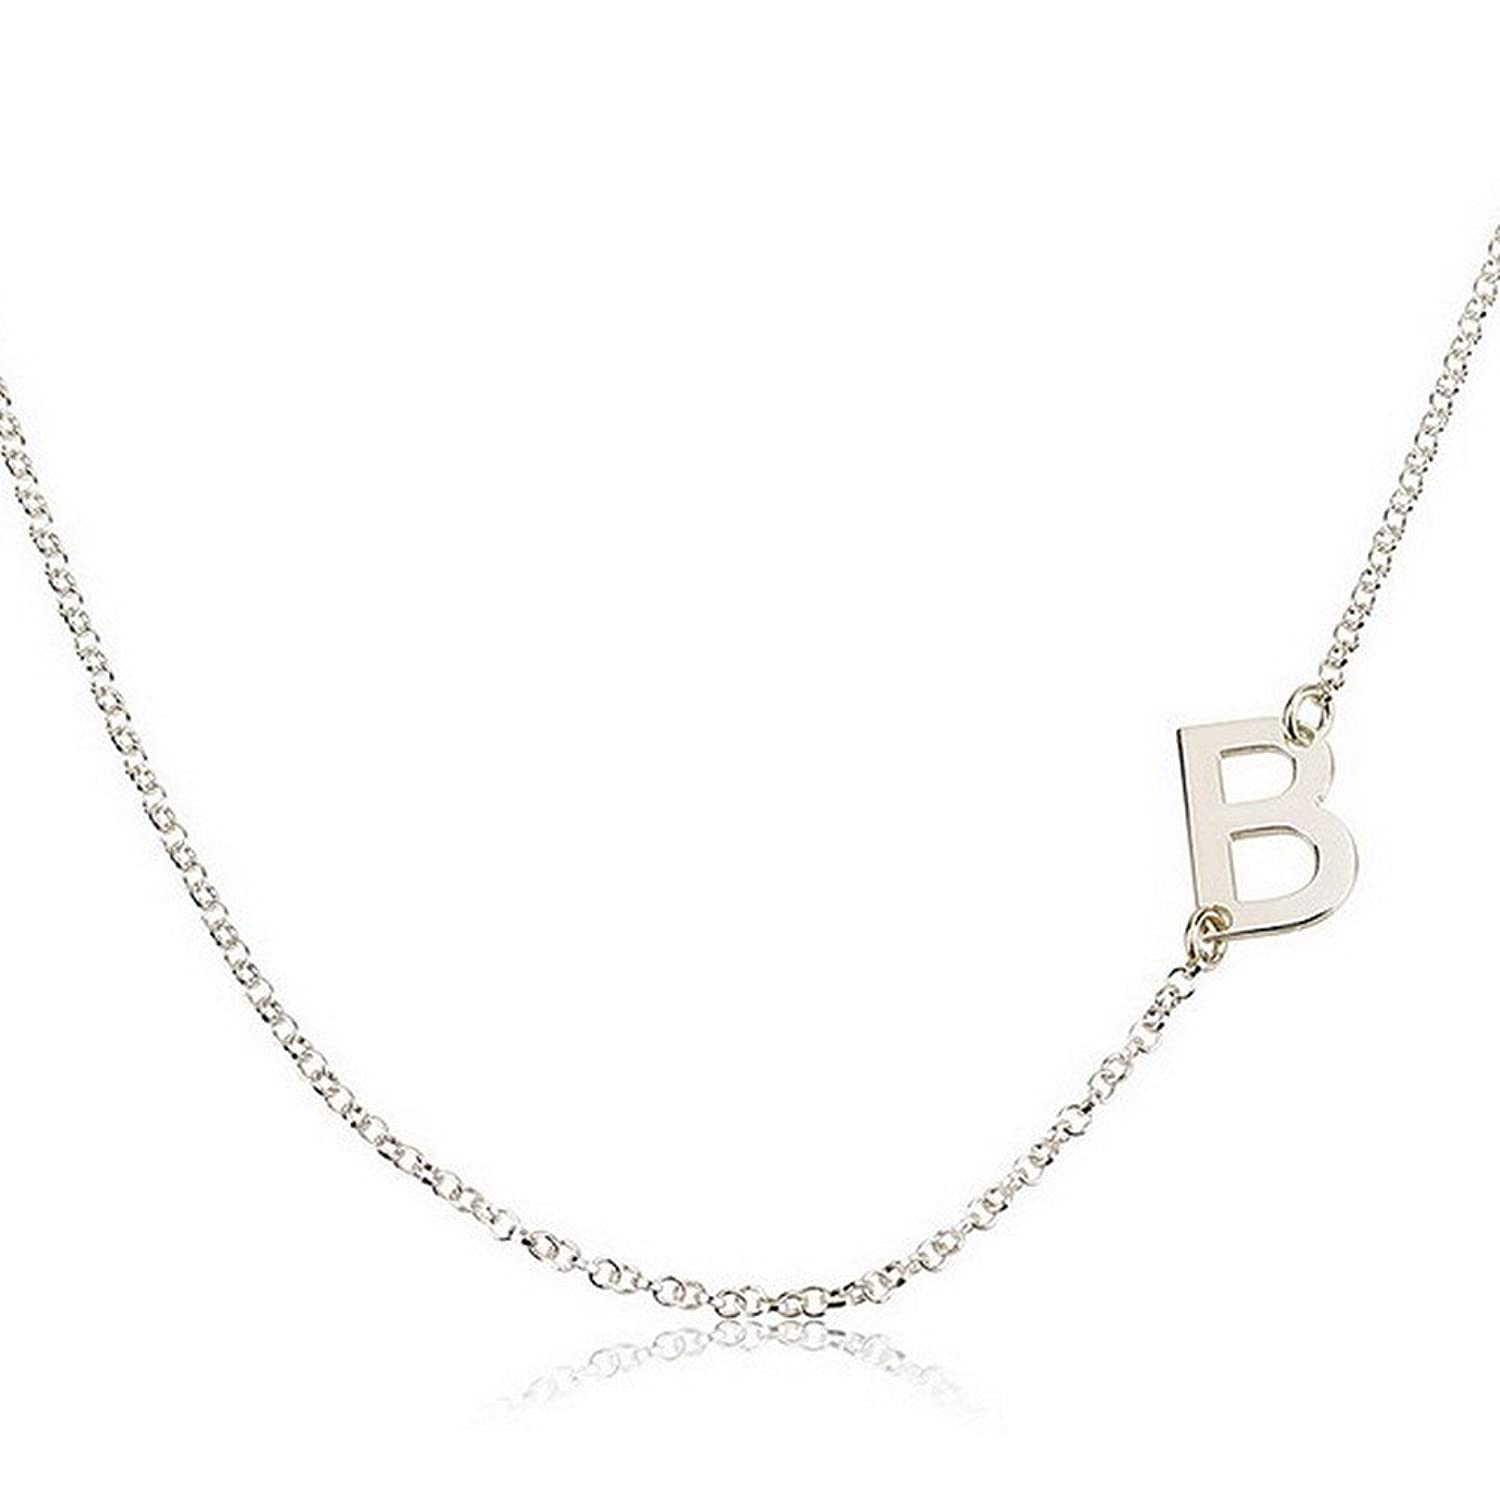 necklace amazon dp pendant com initial sideways silver letter personalized jewelry inches custom